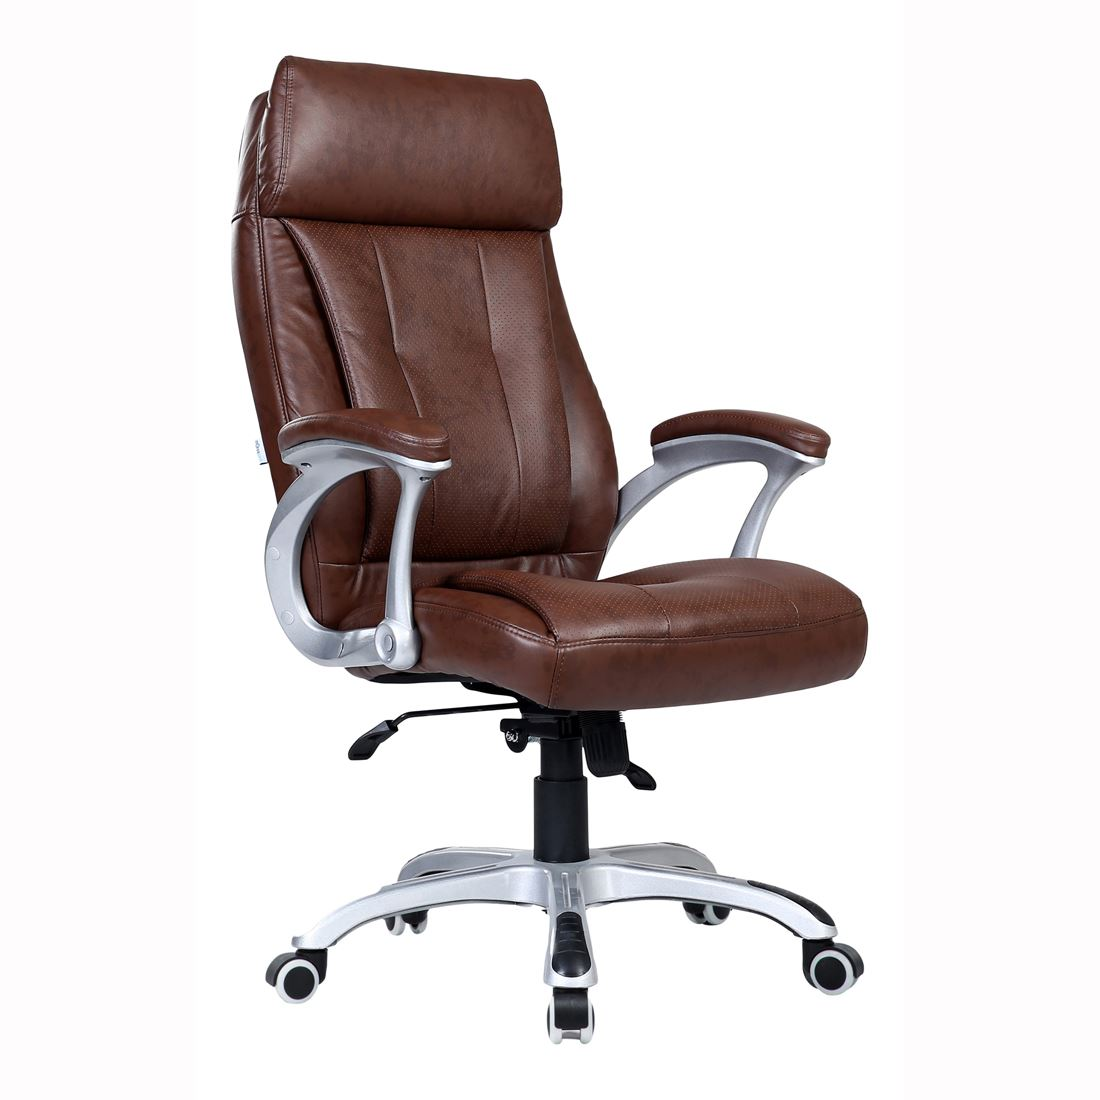 high back chairs uk only silver spandex chair covers modini executive office leather computer